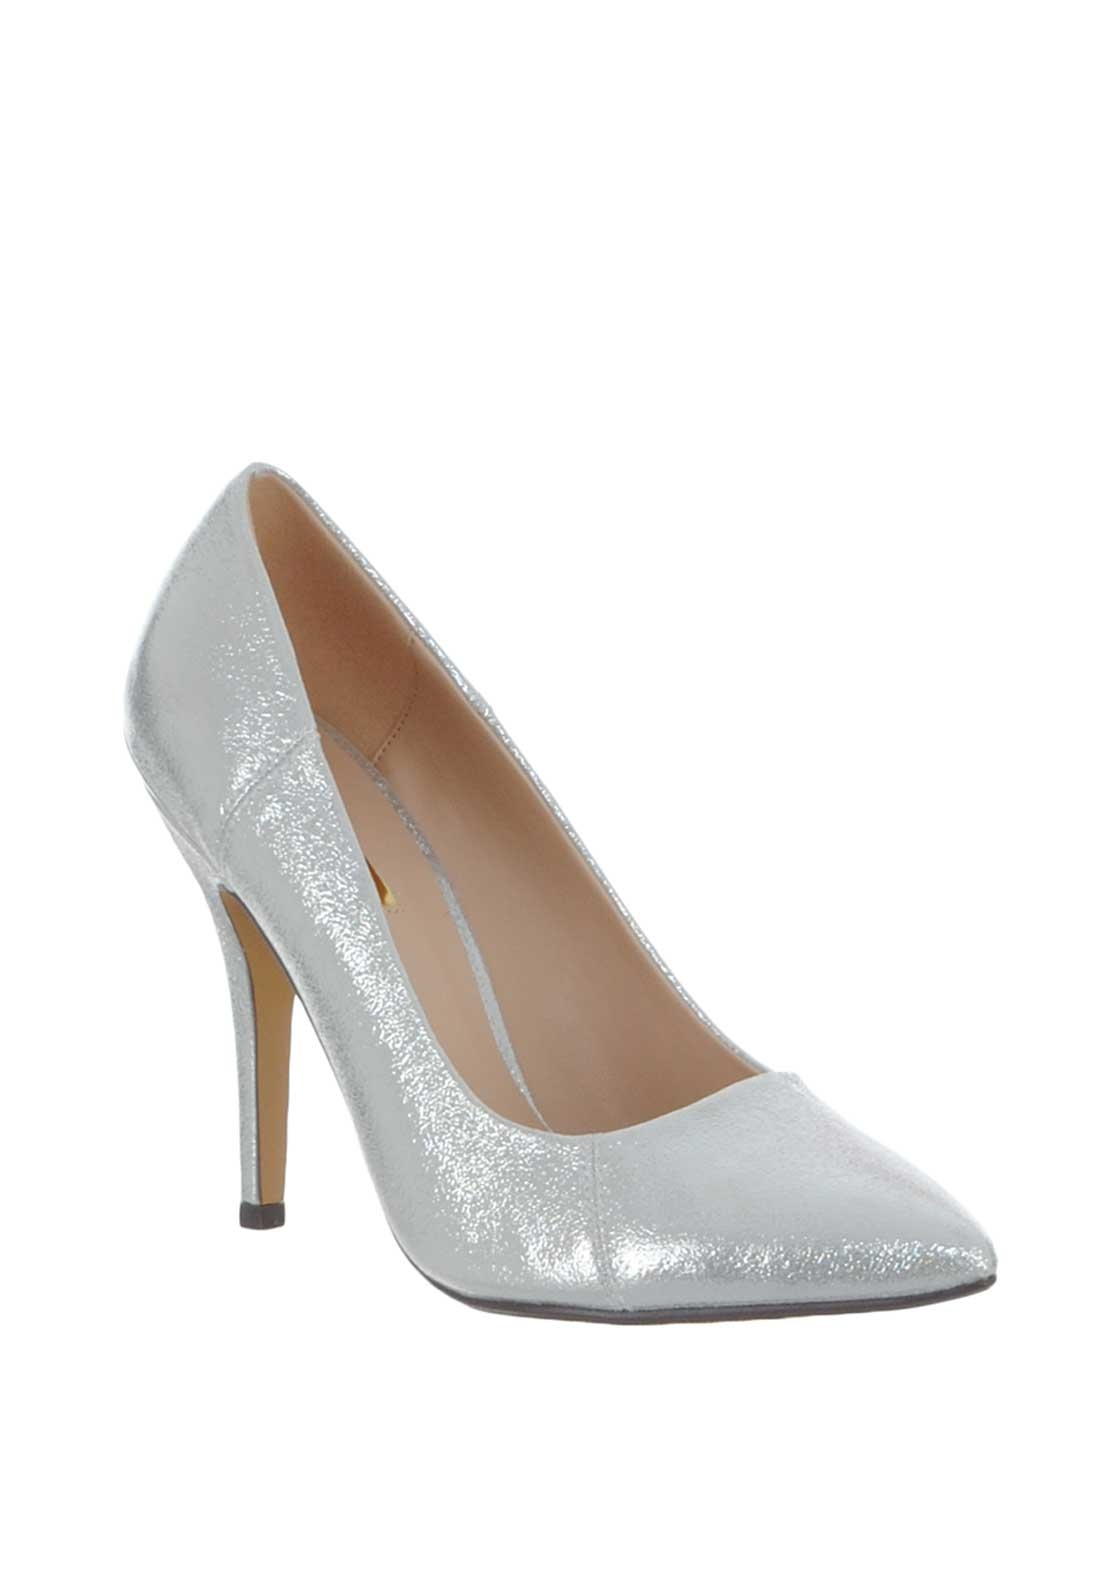 Glamour Carrie Metallic Heeled Shoes, Silver